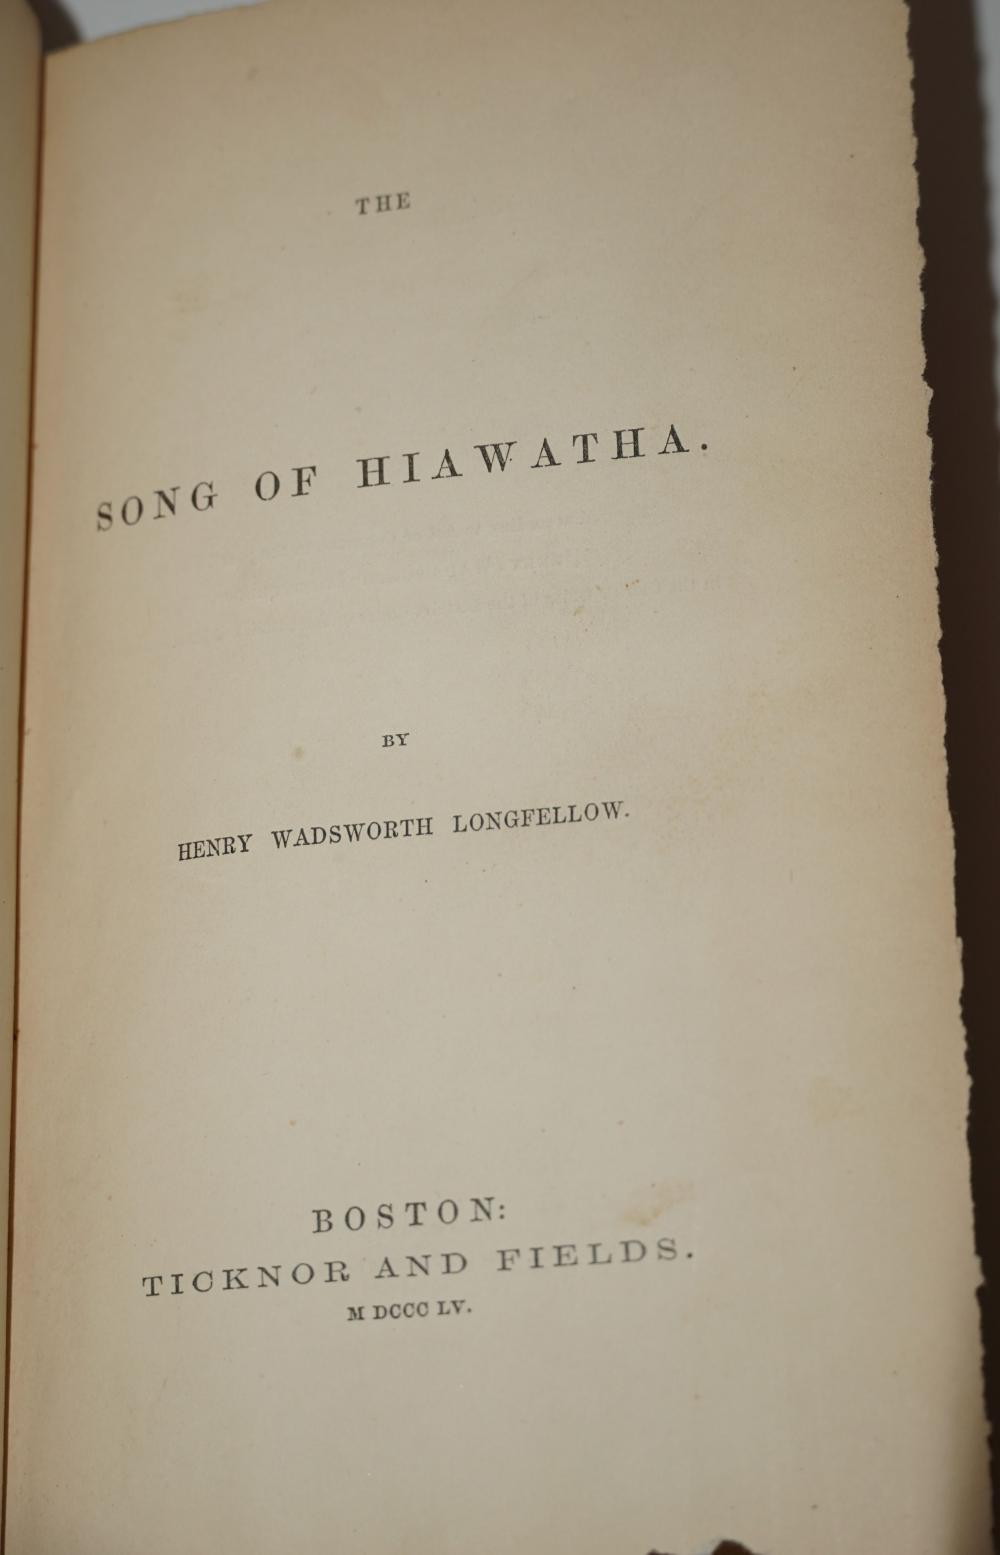 """H.W. Longfellow Superb ALS Regarding Bowdoin College and Shells, Tipped into His Book, """"The Song of Hiawatha"""""""